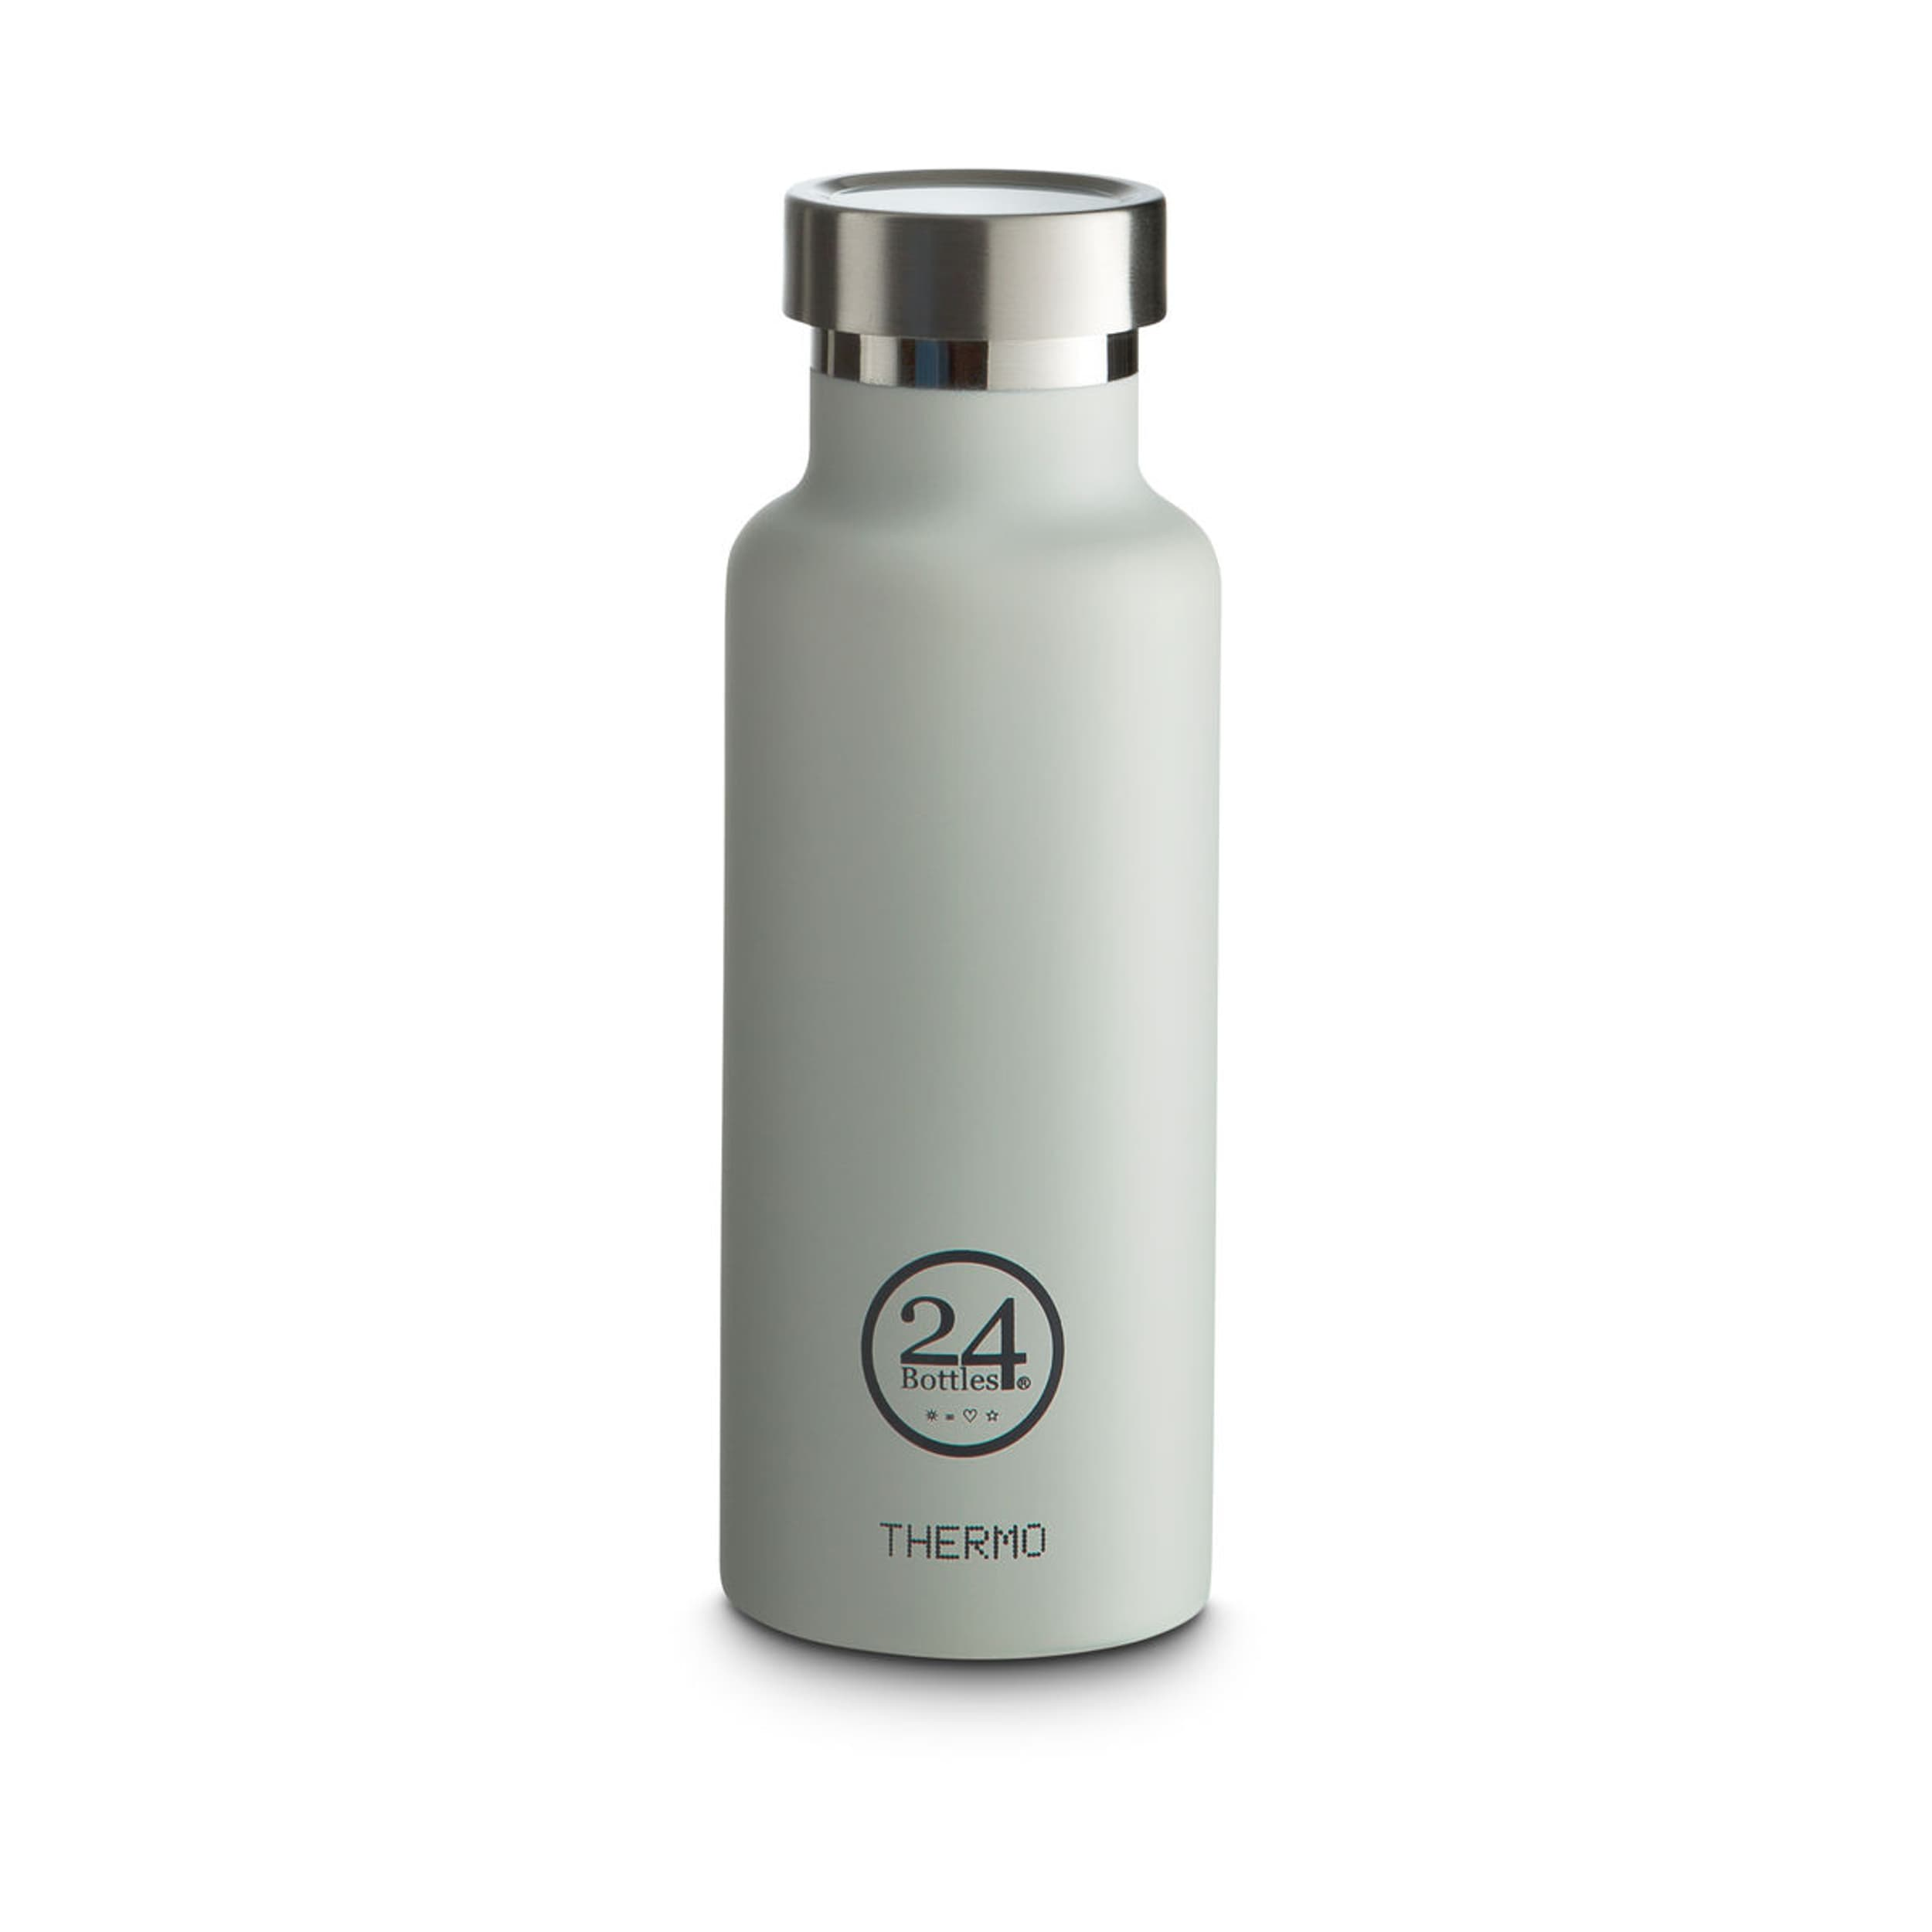 Image of Thermoflasche 0.5 lt. weiss CLIMA